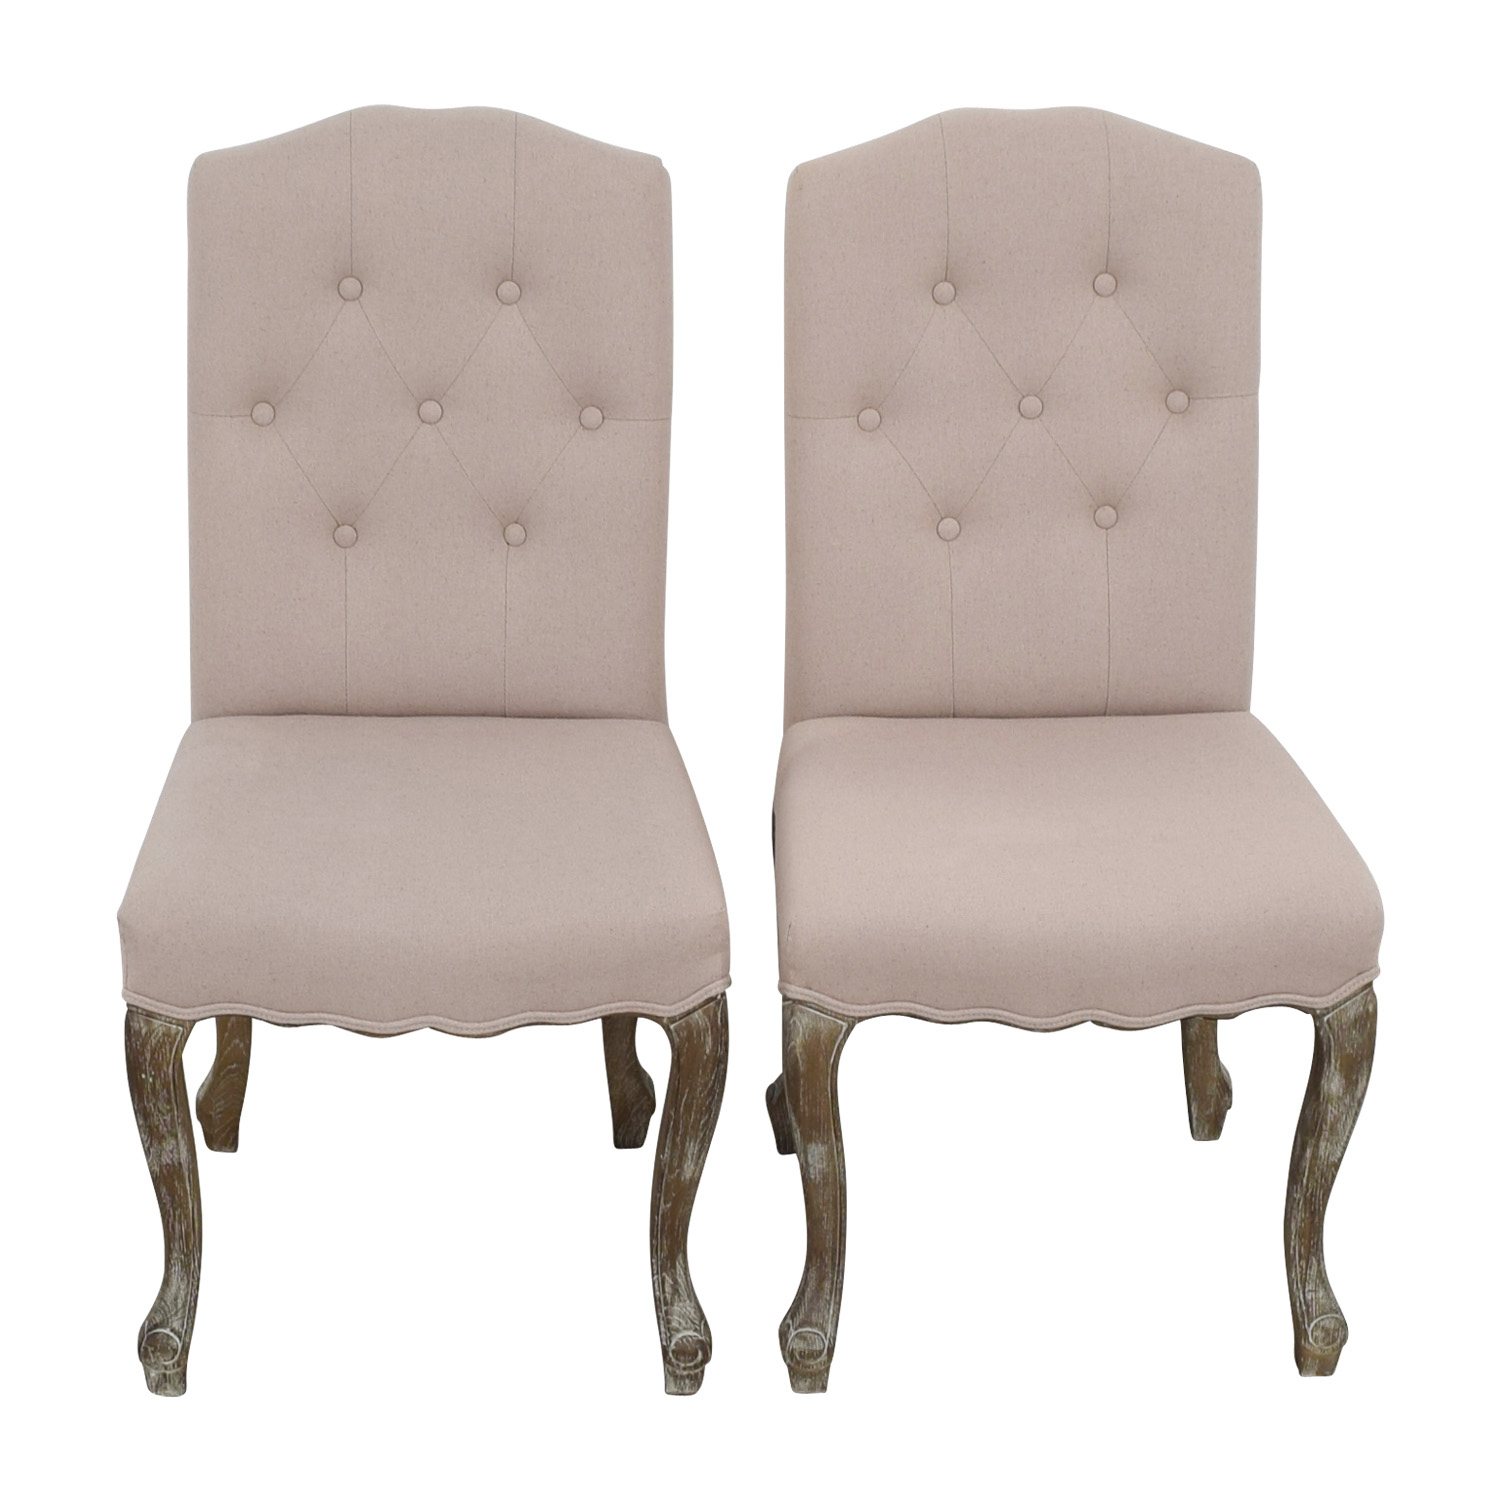 Safavieh Safavieh Tufted Beige Side Chairs